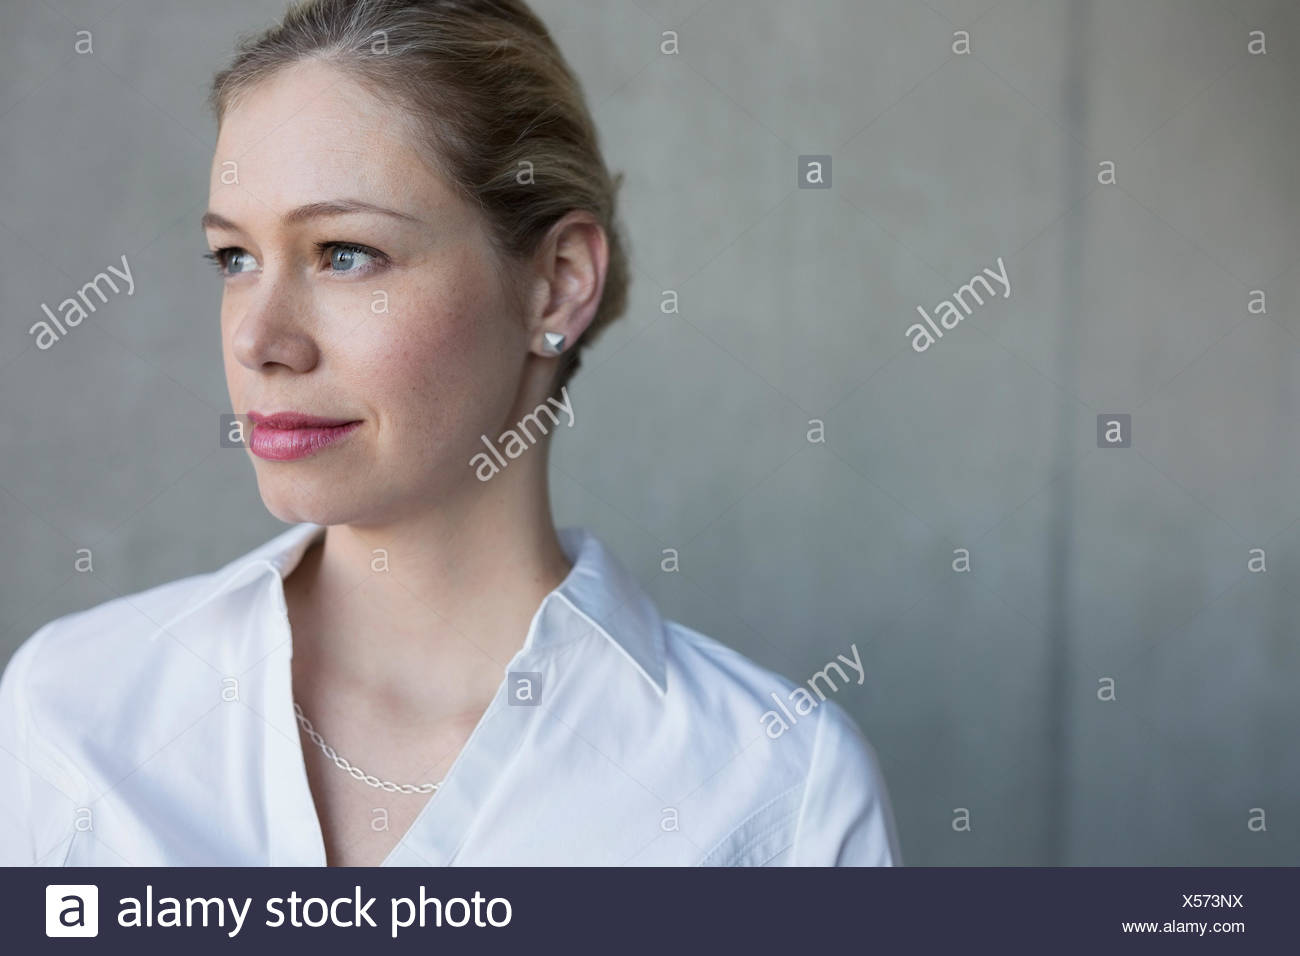 Pensive businesswoman with blonde hair looking away Stock Photo